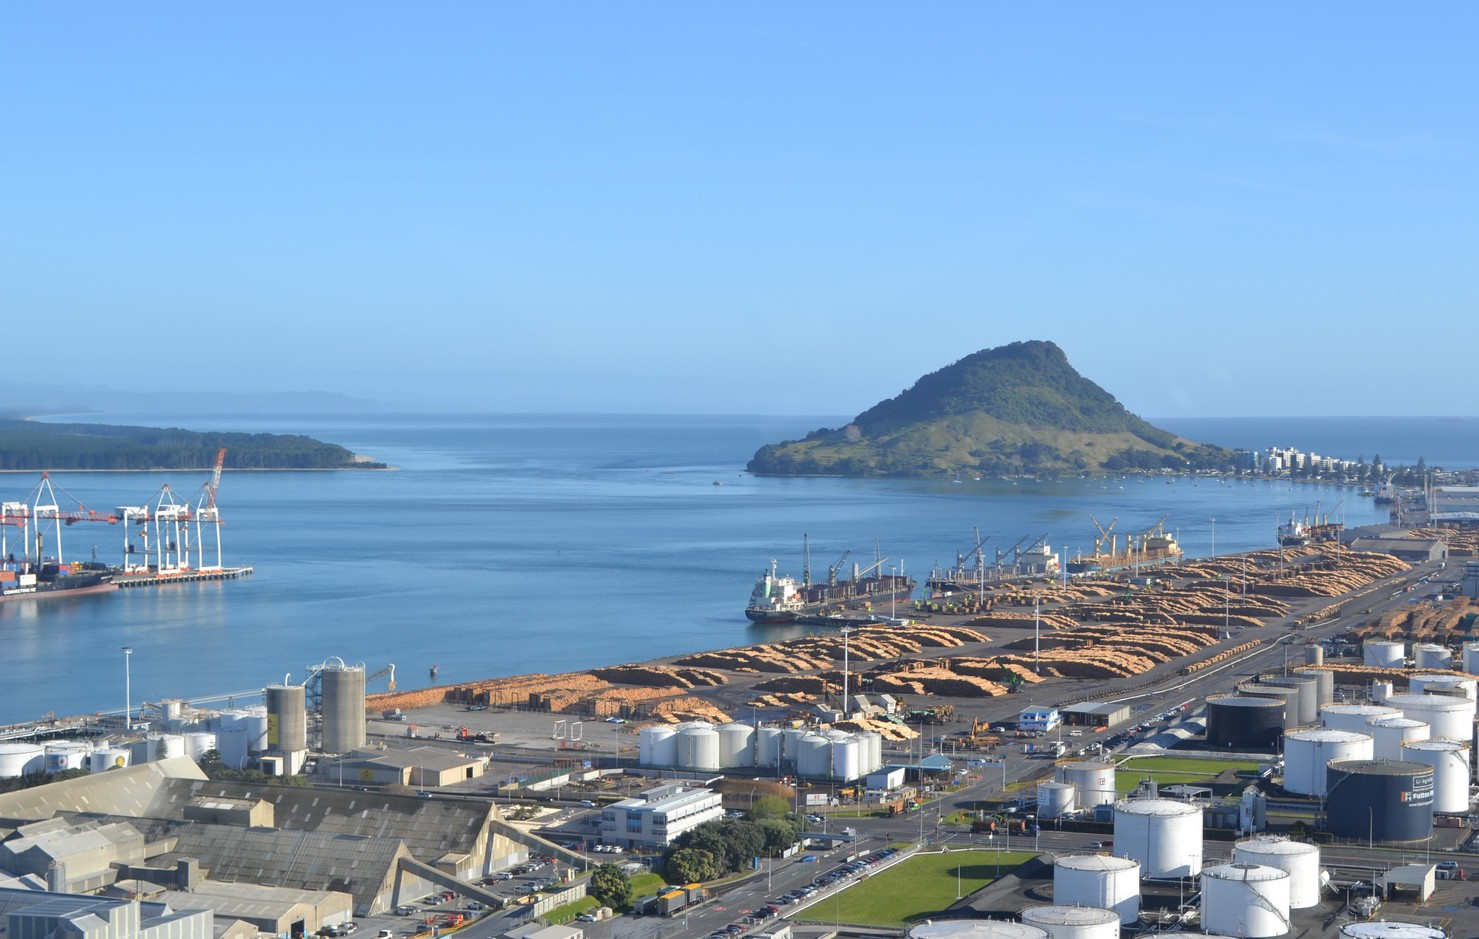 Port of Tauranga and the Tauranga harbour